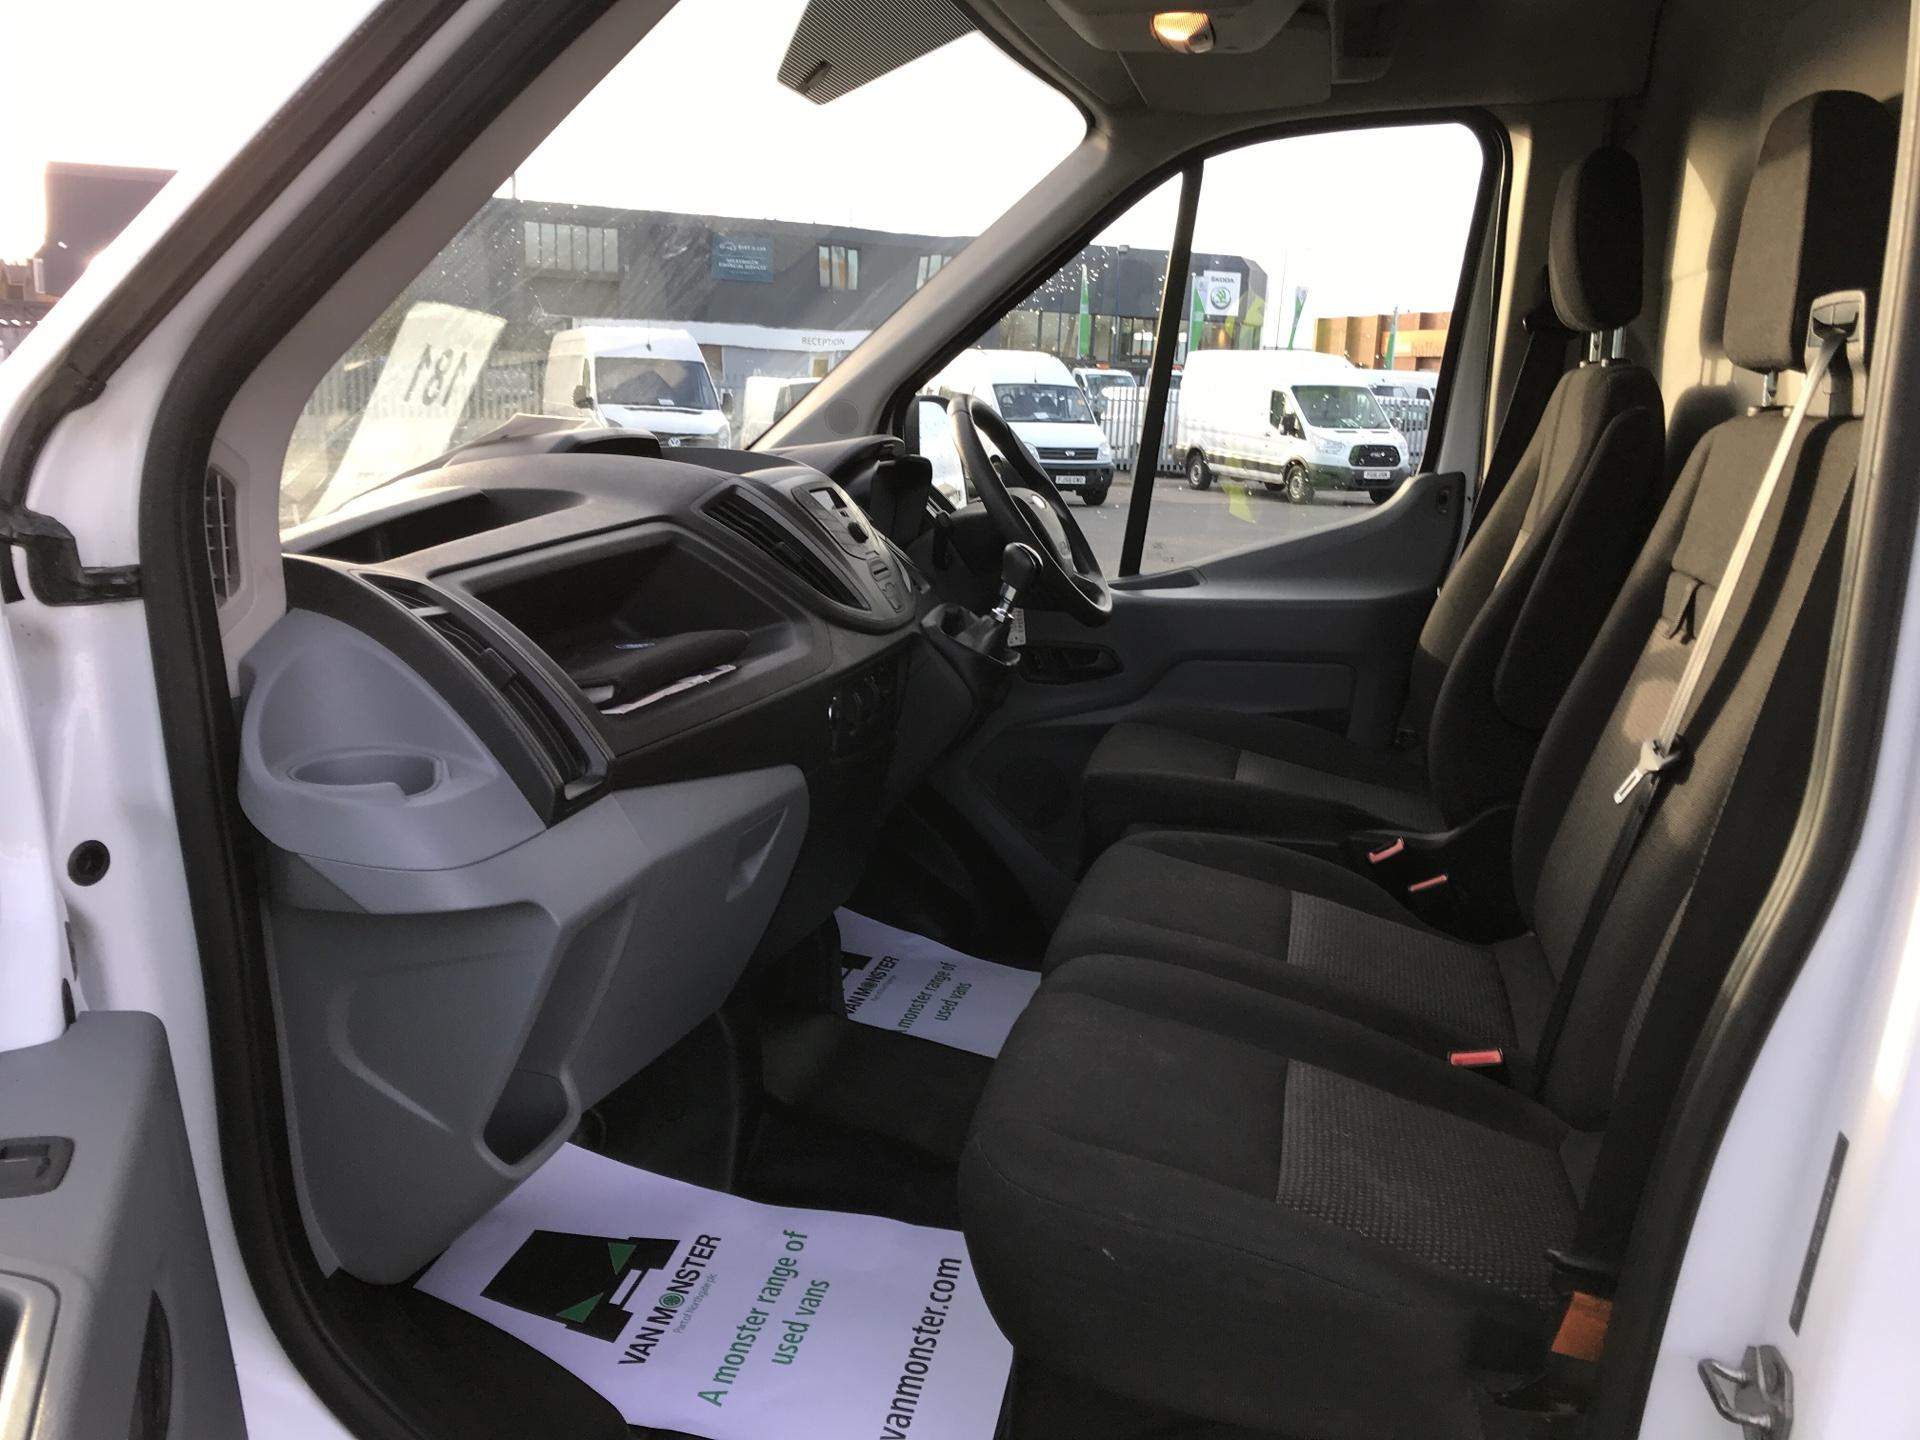 2015 Ford Transit   T350 L3 H3 Van 125PS Euro 5 *VALUE RANGE VEHICLE CONDITION REFLECTED IN PRICE* (FL15XJY) Image 14